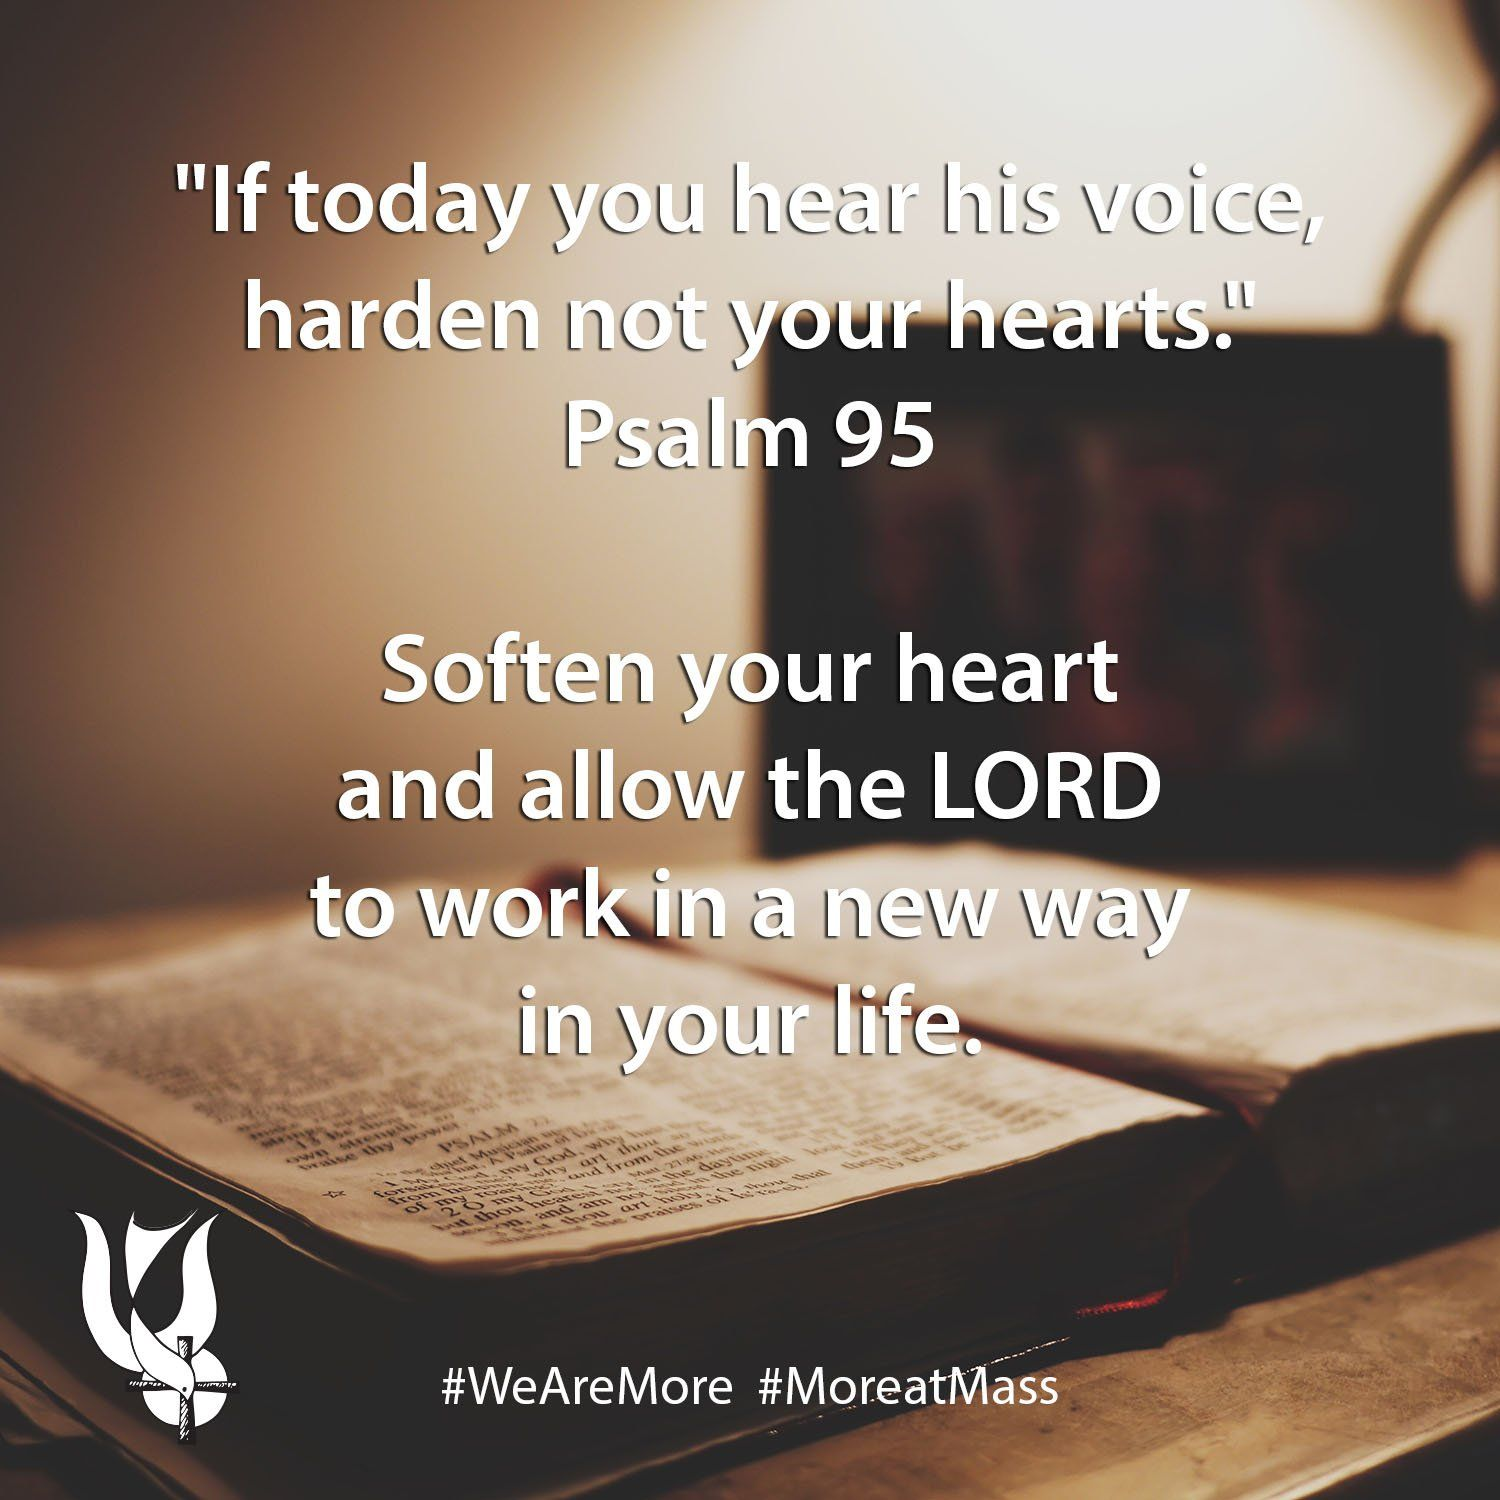 """If today you her his voice, harden not your hearts."" (Psalm 95) - Meme by St. Thomas More Newman Center, the Catholic campus ministry served by the Paulist Fathers at Ohio State in Columbus, OH."